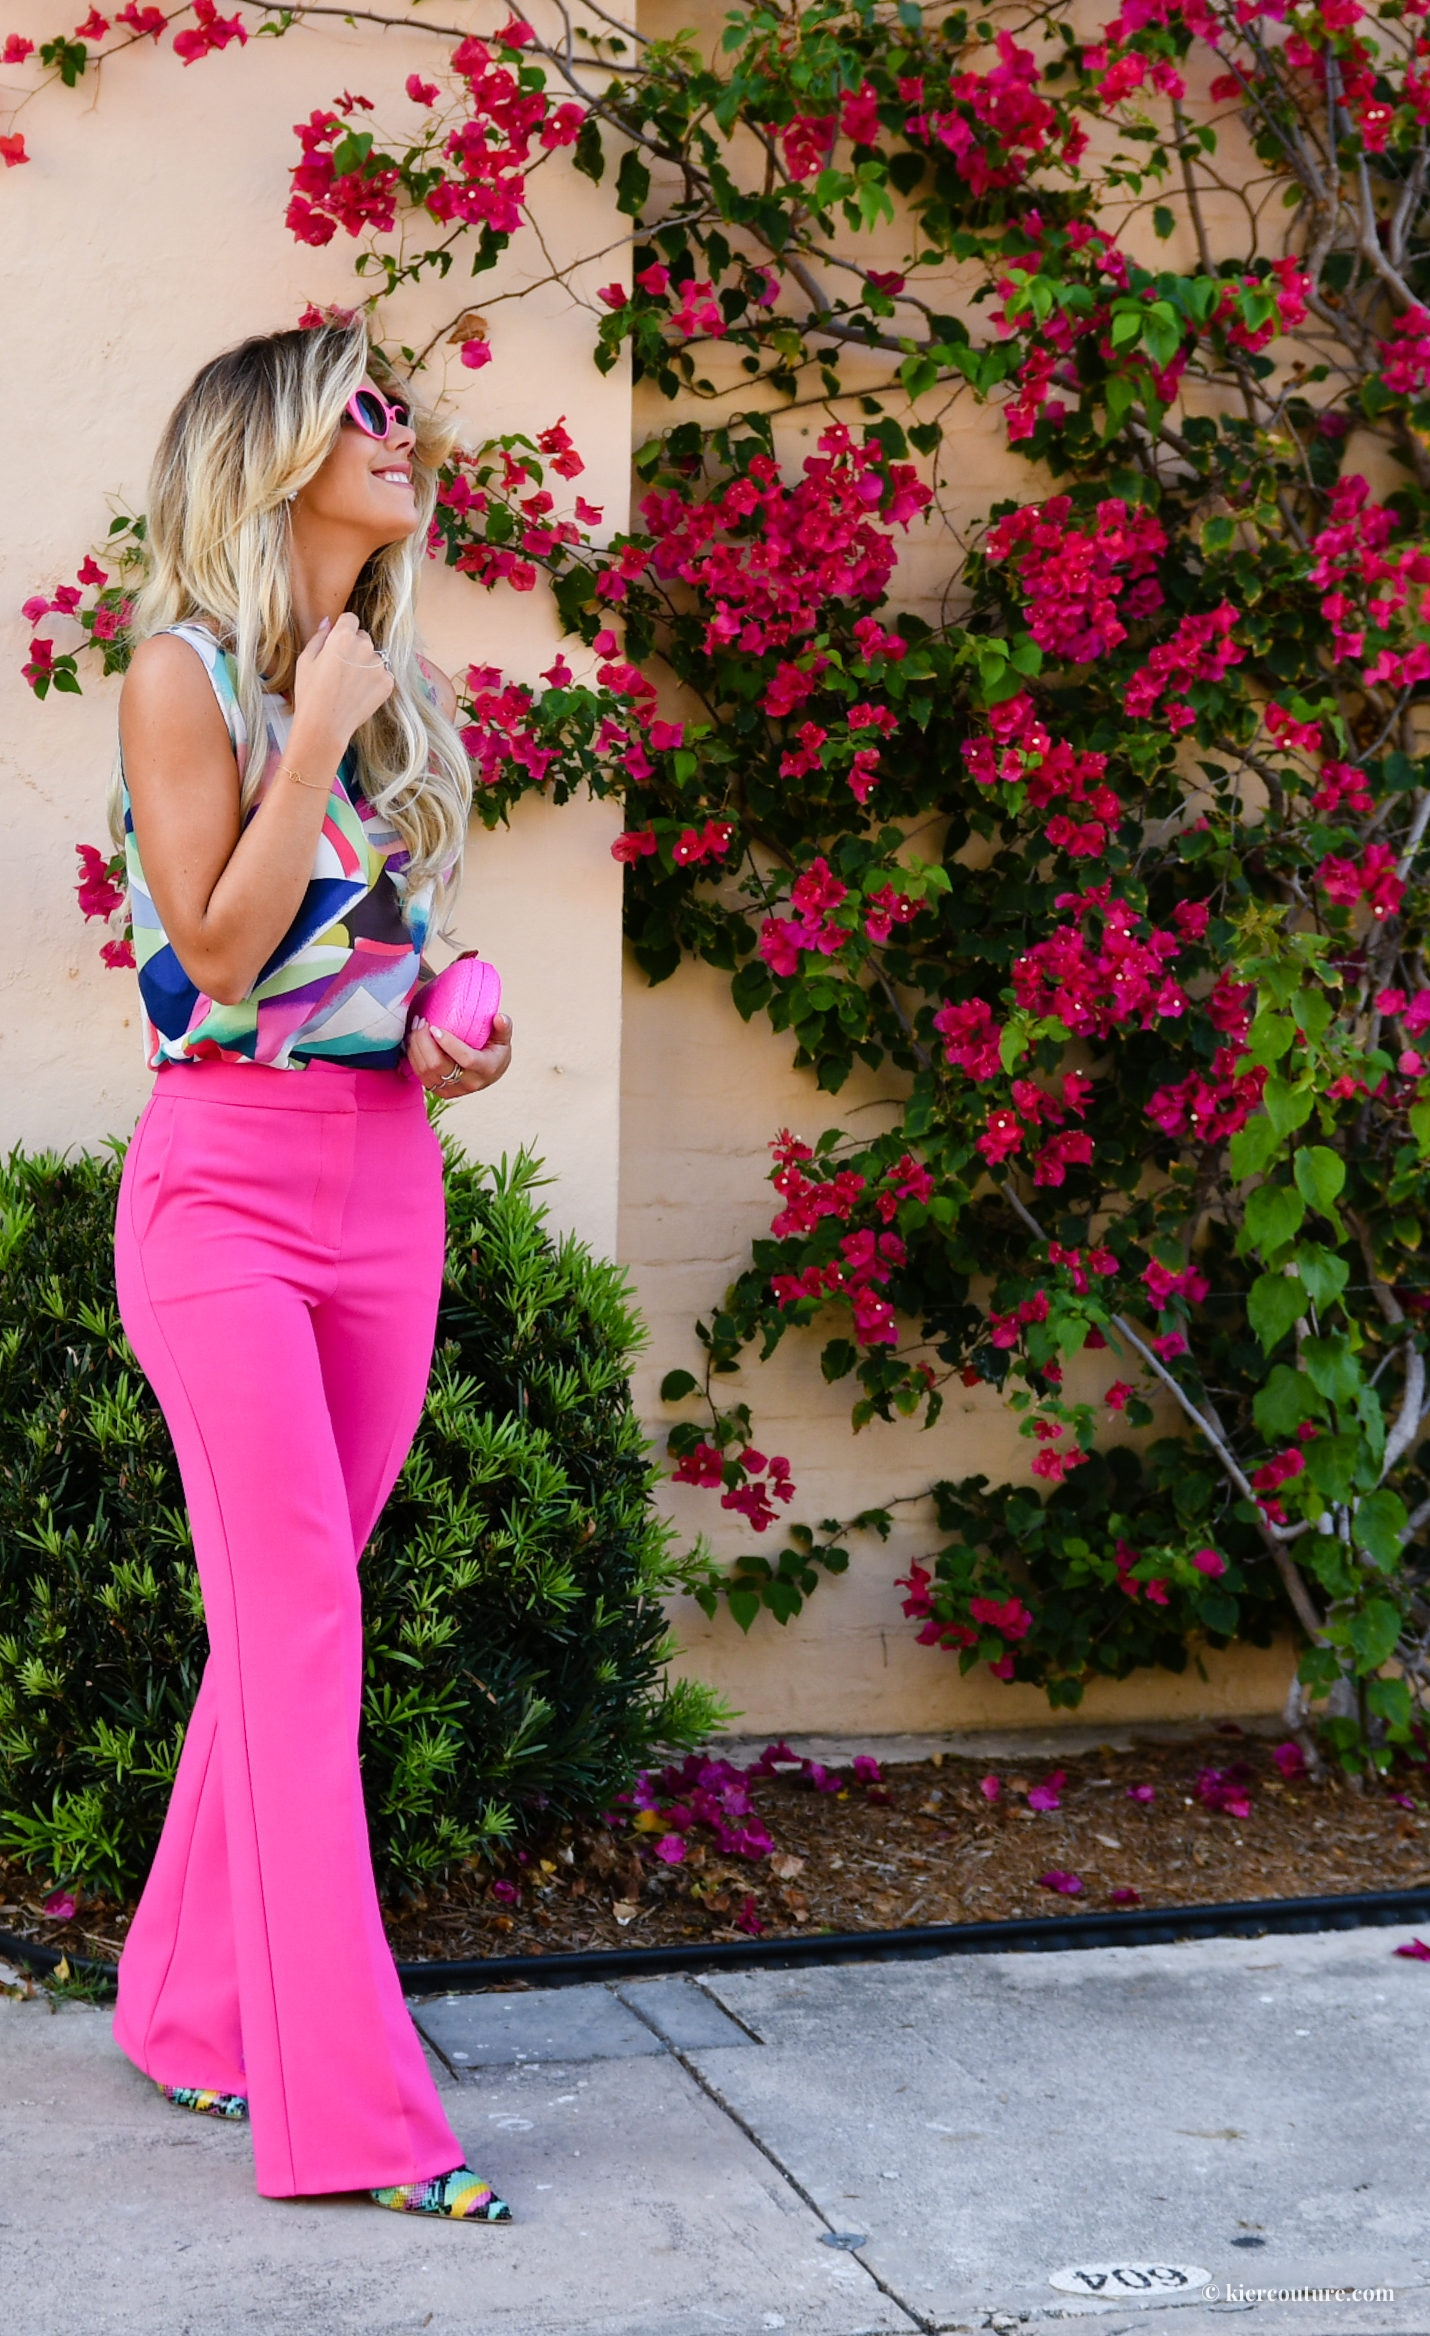 Kier Couture in pink trousers